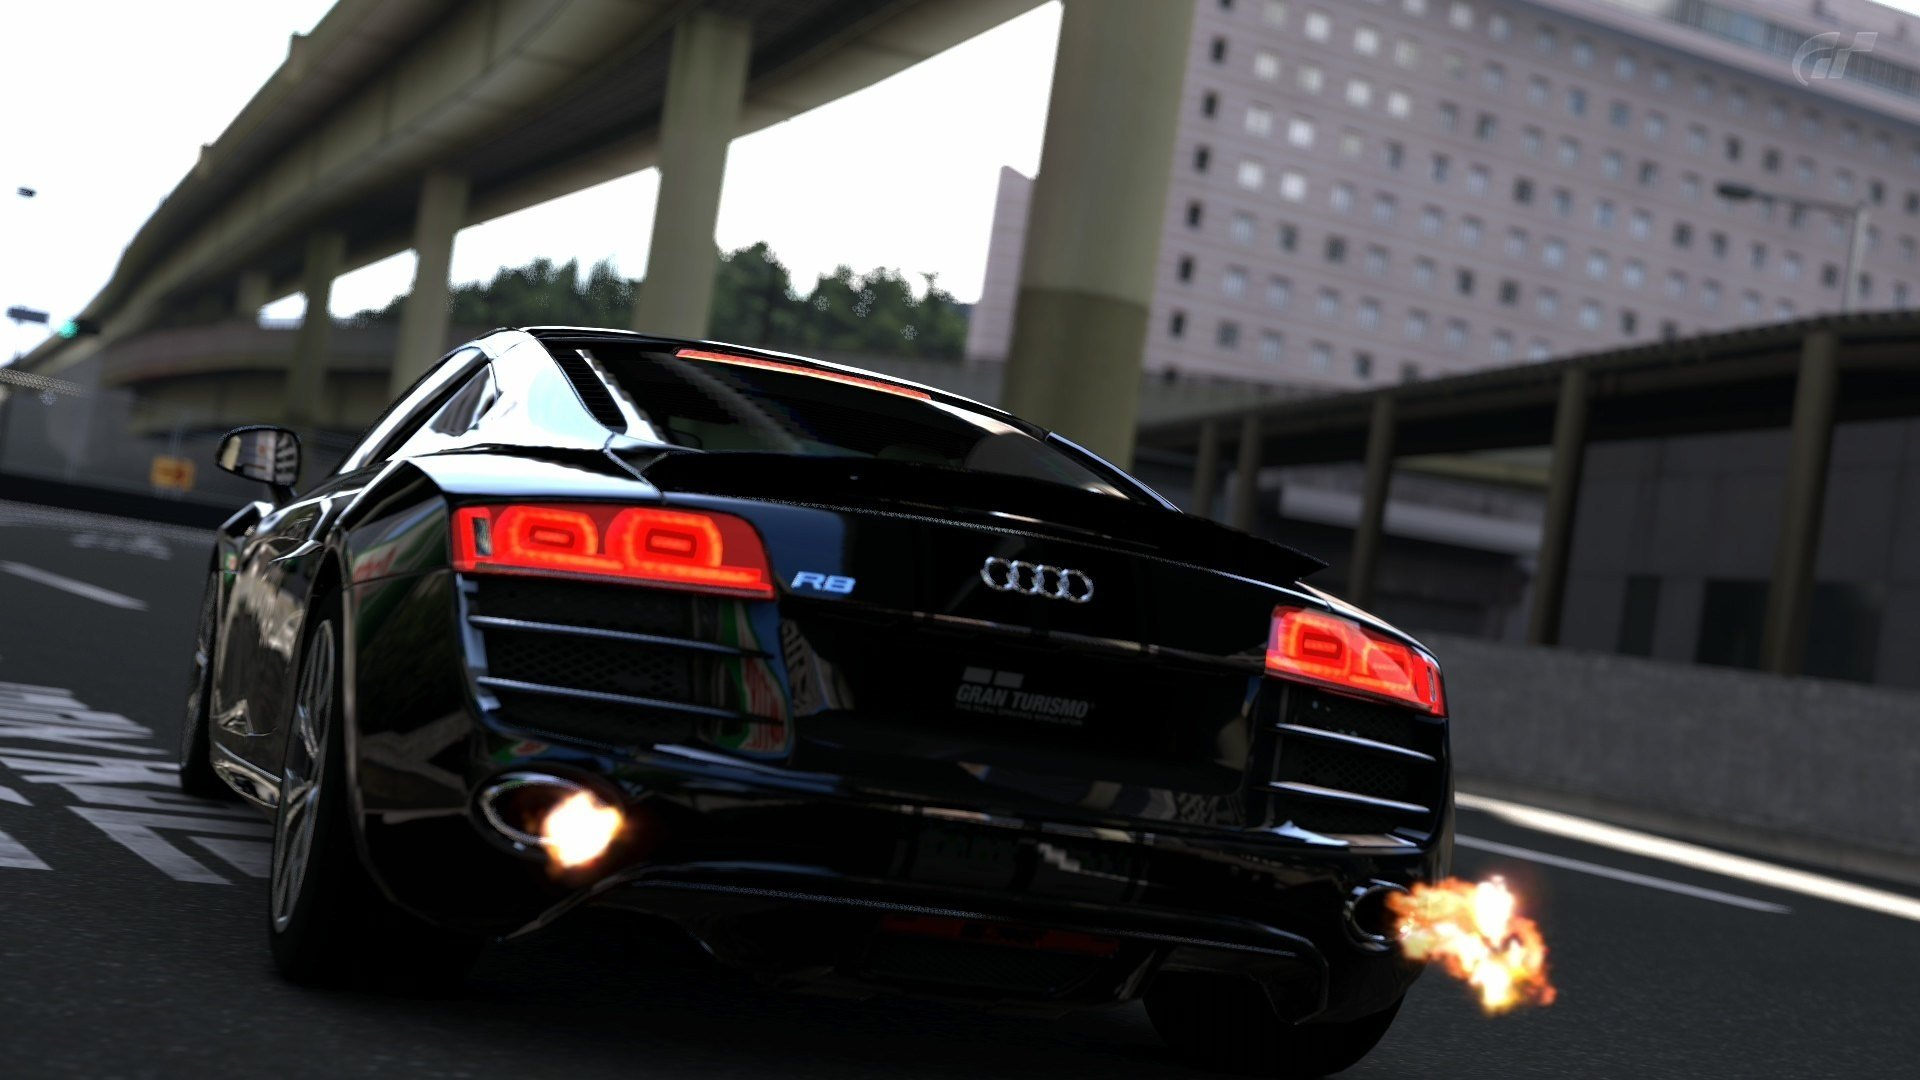 Latest Video Games Cars Audi R8 Gran Turismo 5 Ps3 1920X1080 Free Download